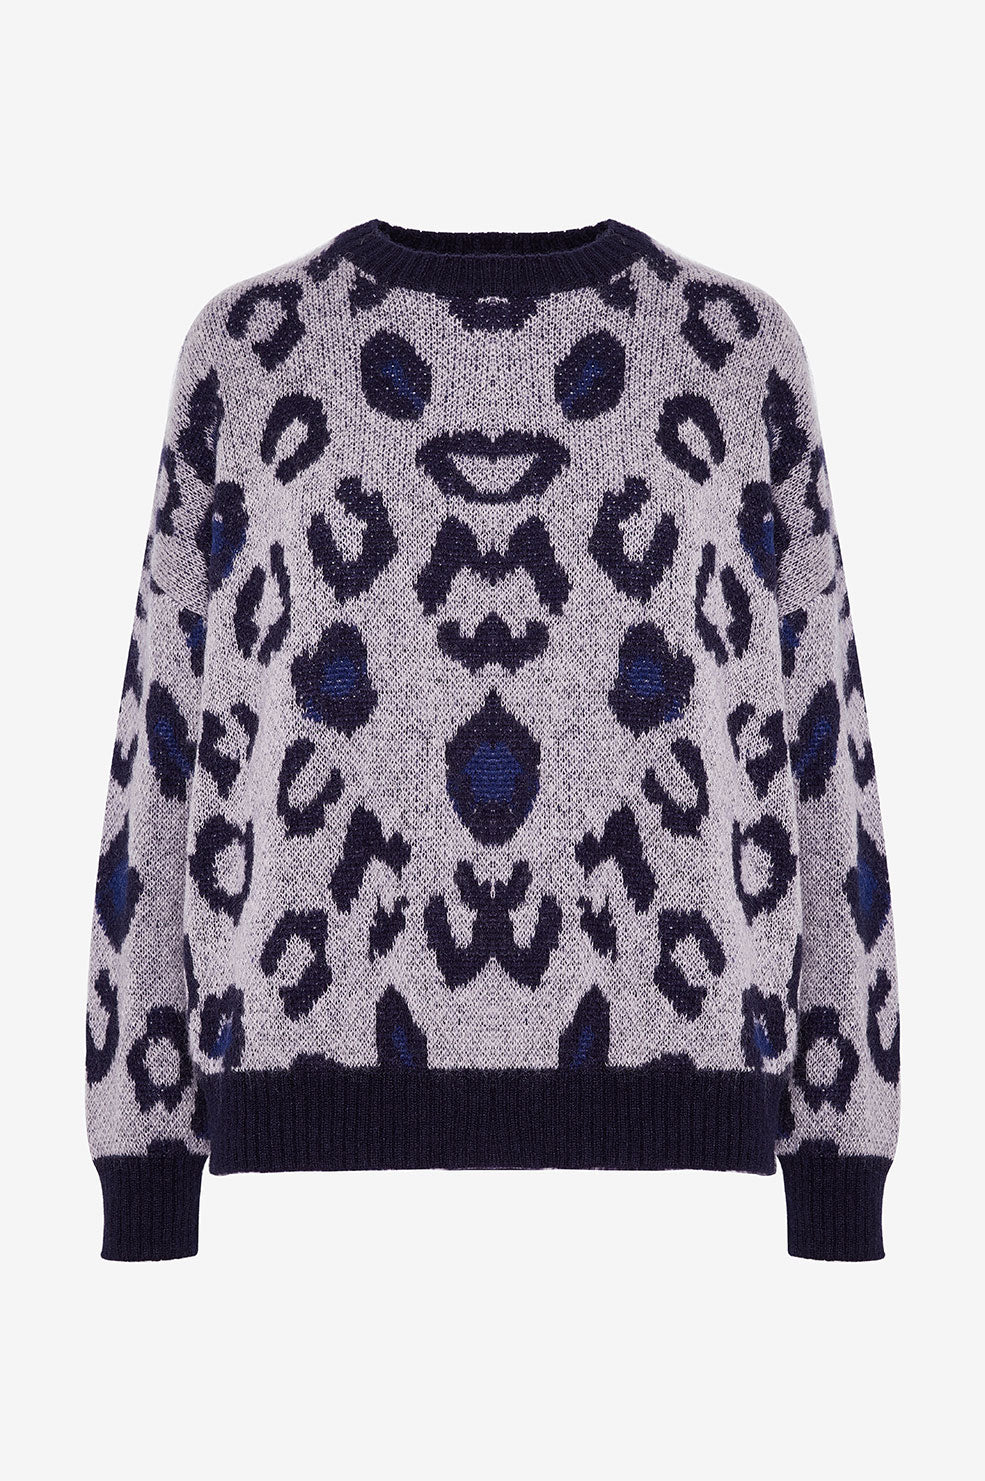 ANINE BING Raigh Sweater - Cloudy Blue Leo